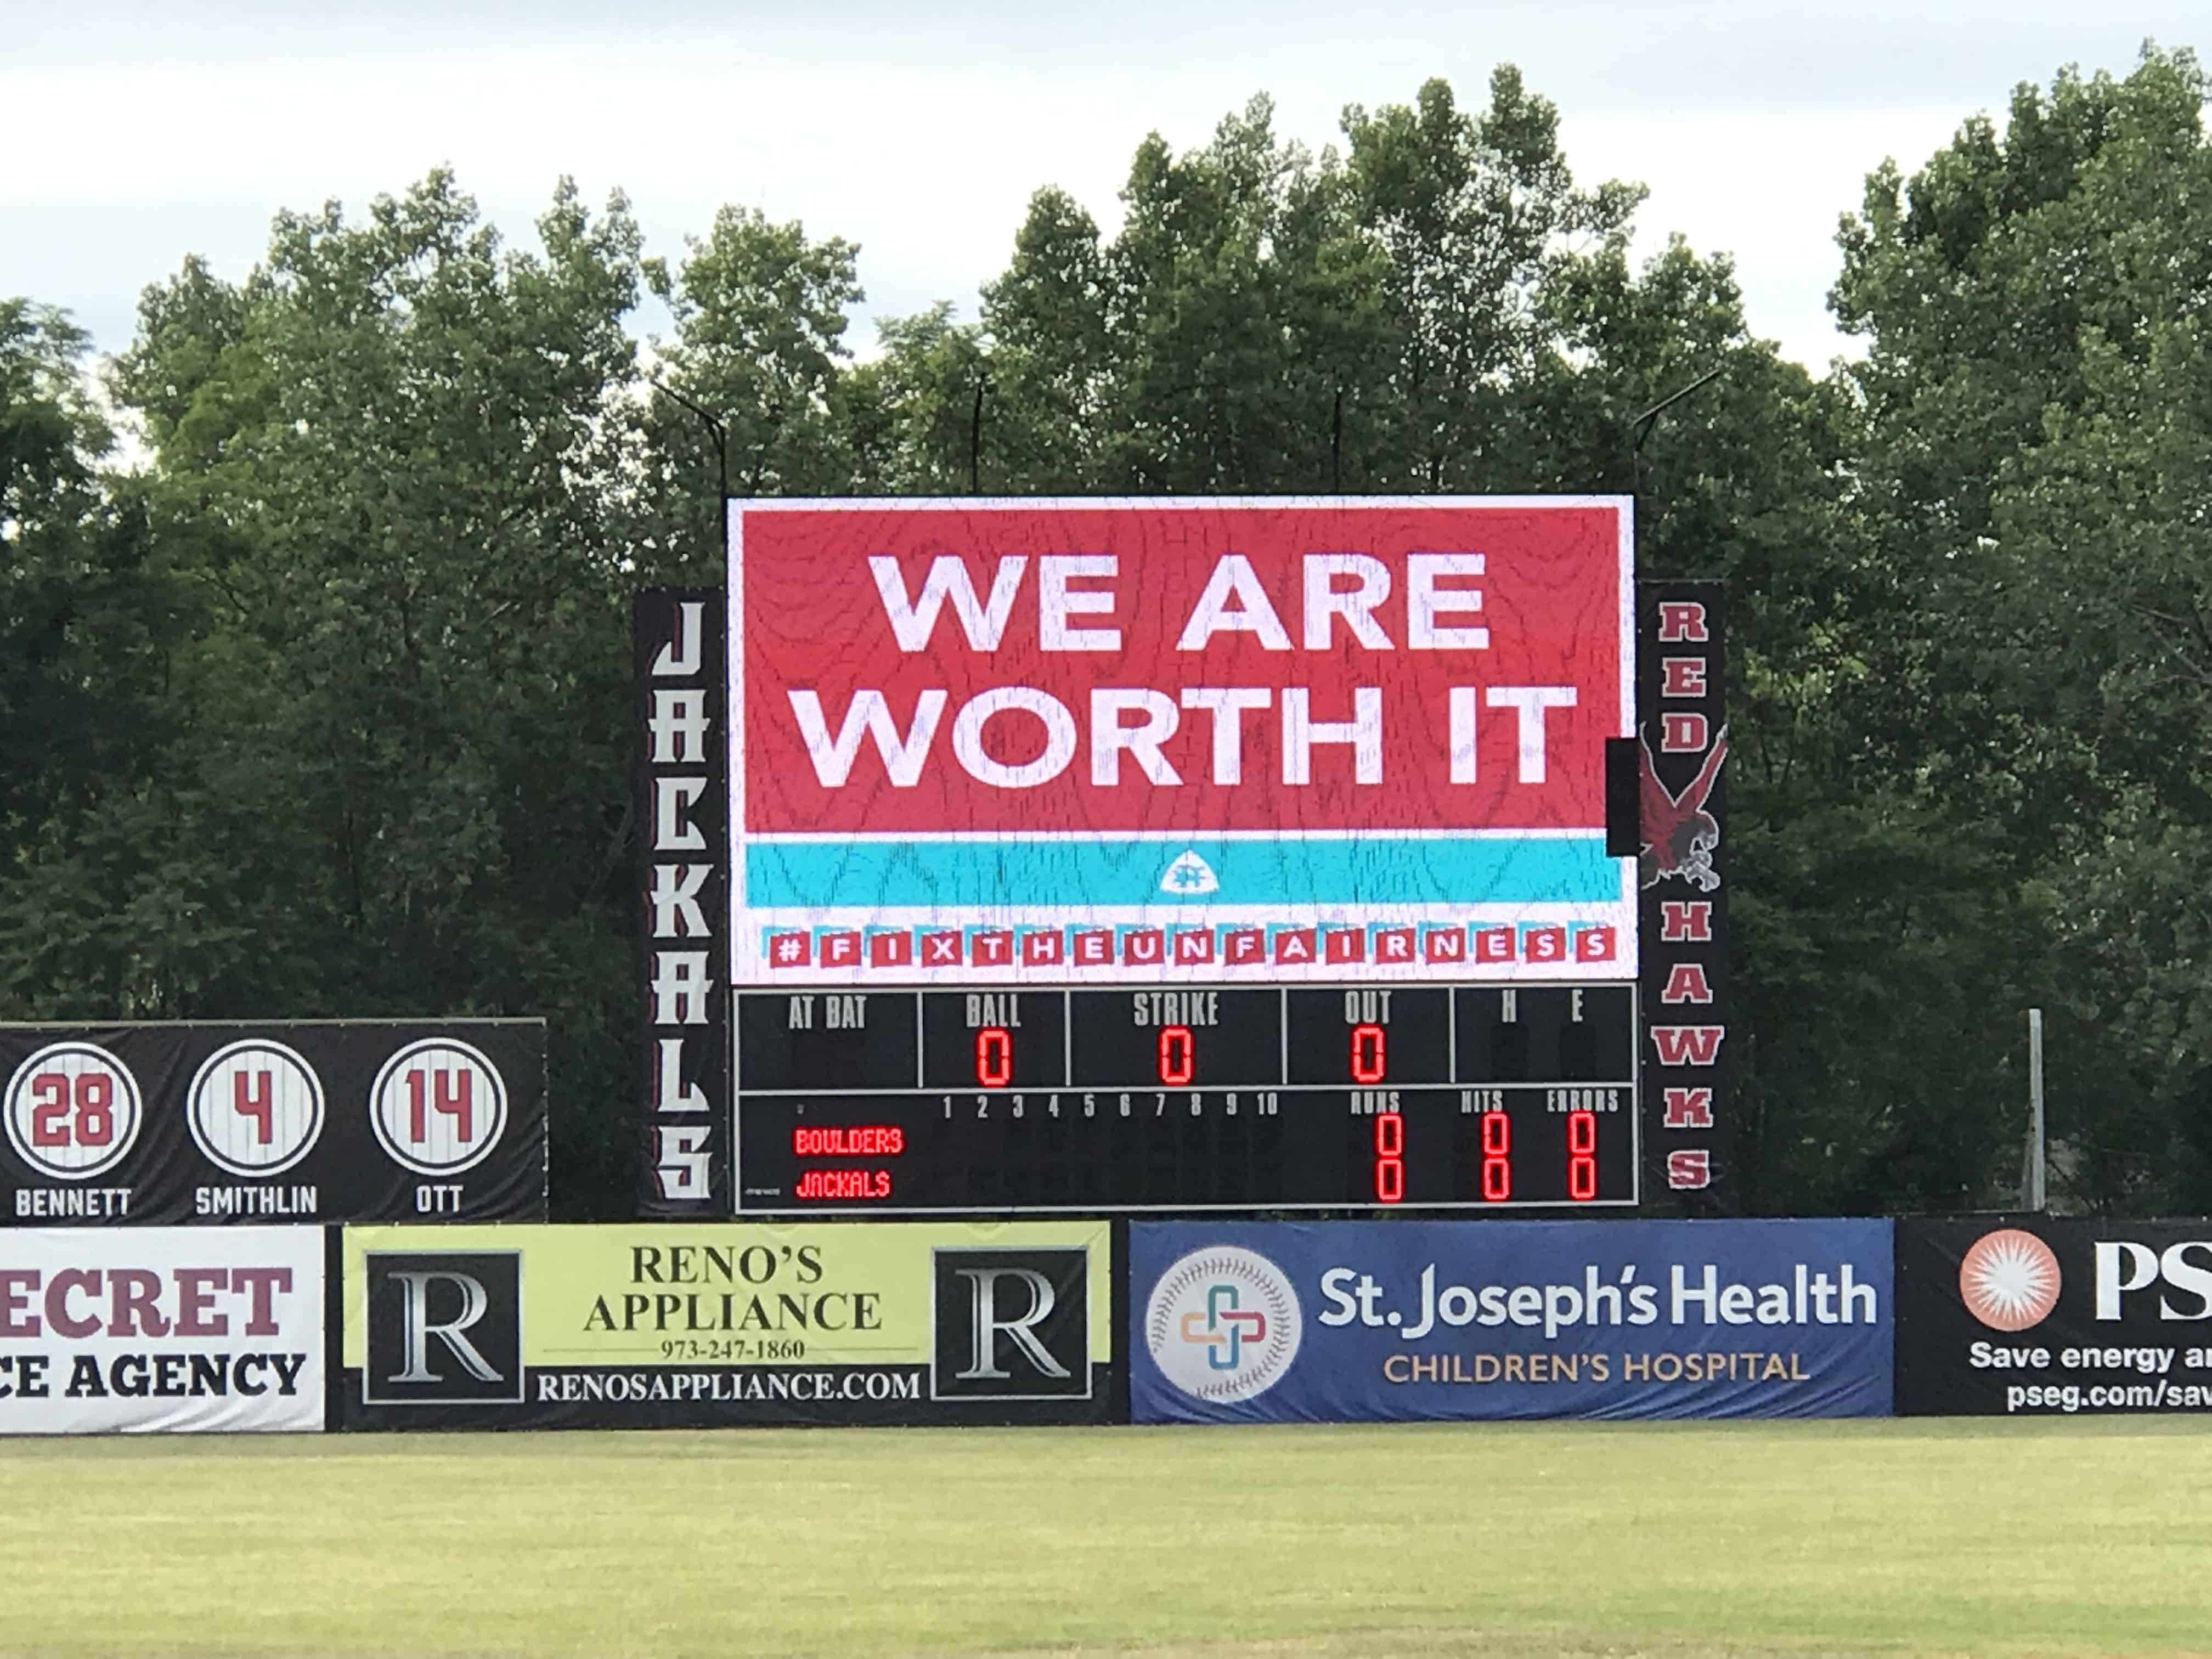 We-Are-Worth-It-on-scoreboard-pic-by-Mike-Pettineo-3